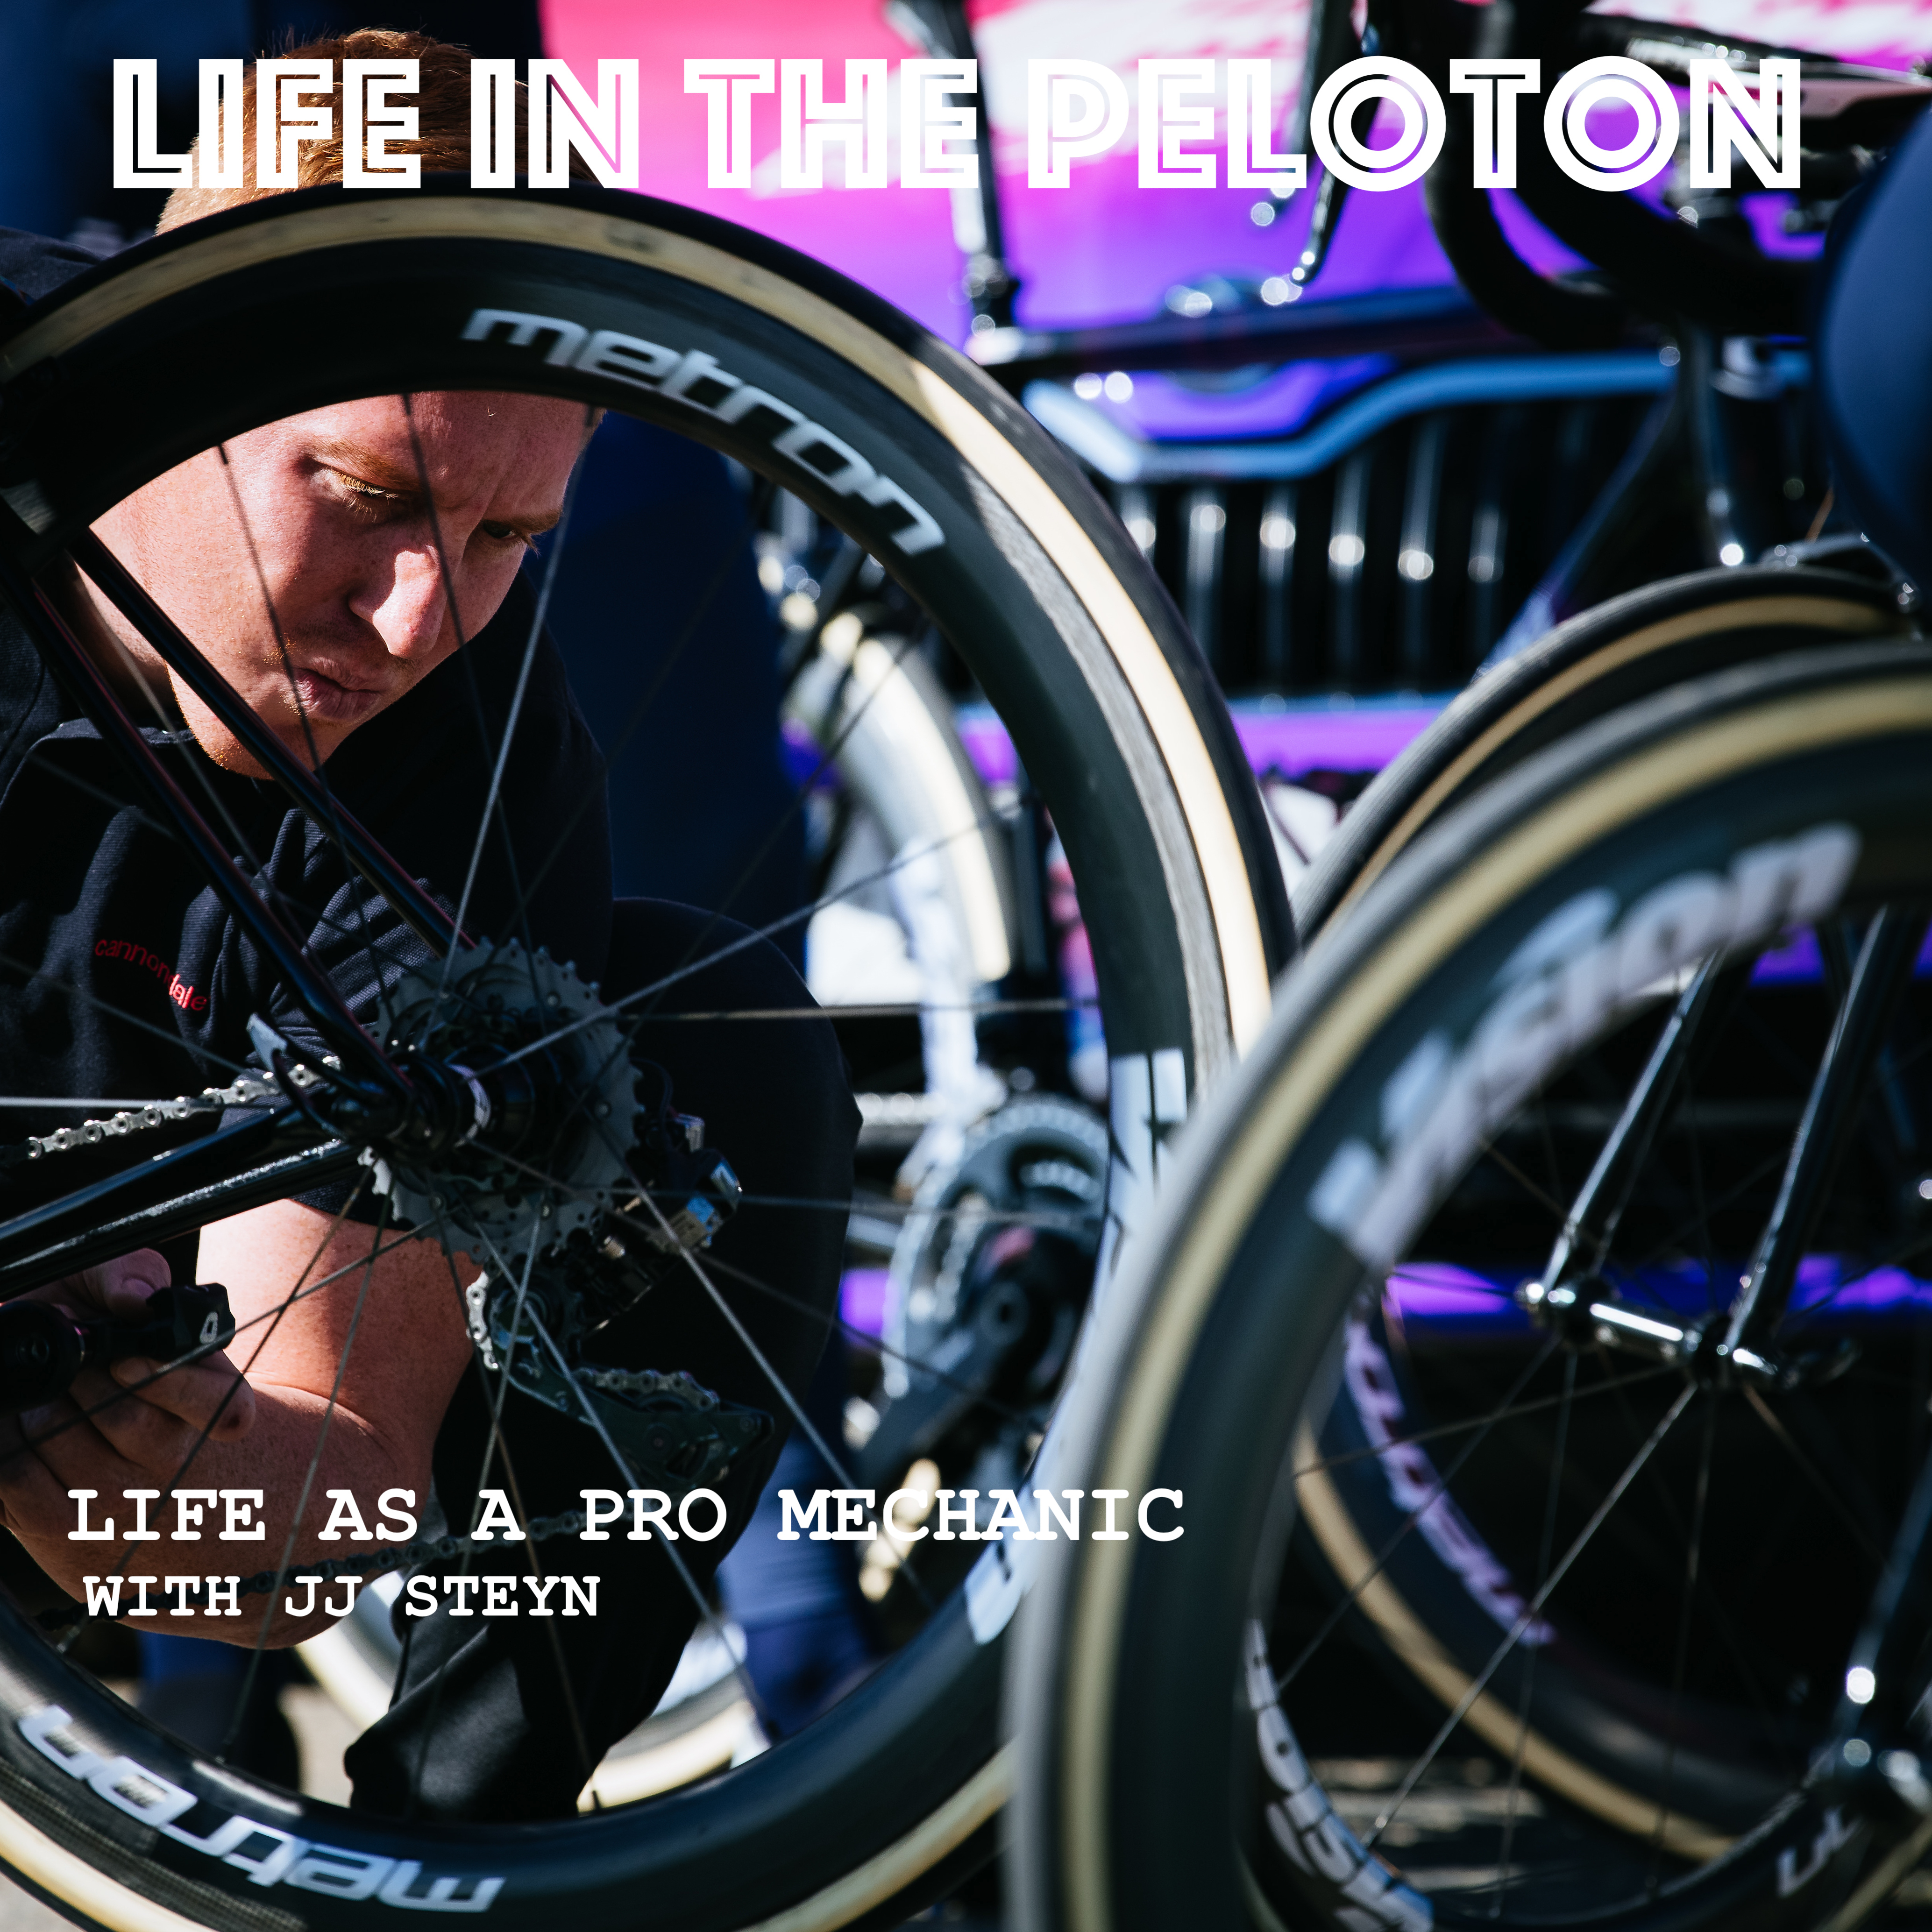 JJ – Life as a Pro Mechanic